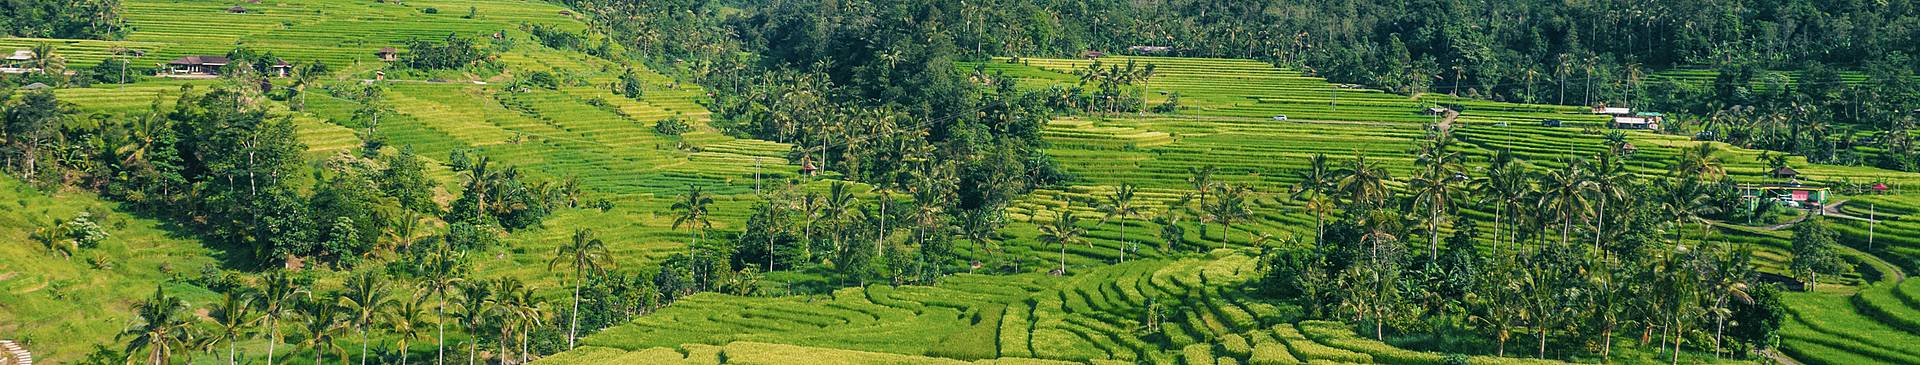 Off-the-beaten-track trips in Bali